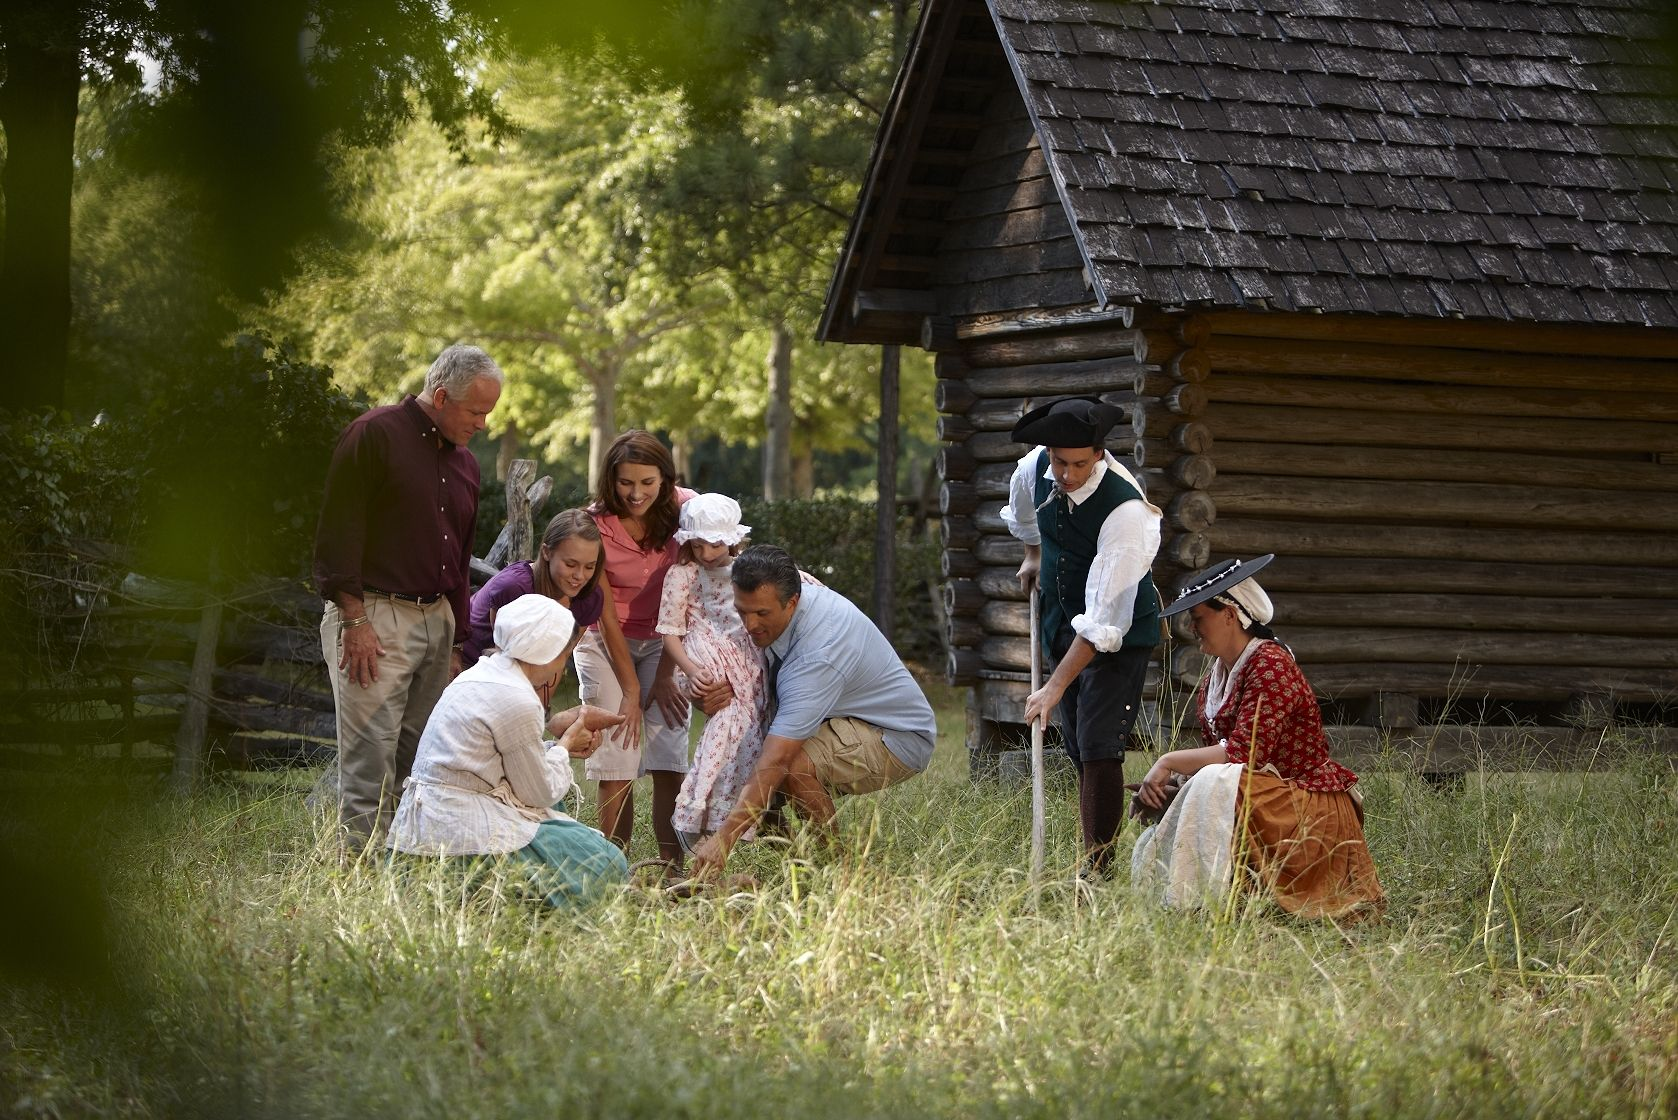 Explore Two Living History Museums Recreated Outdoor Army